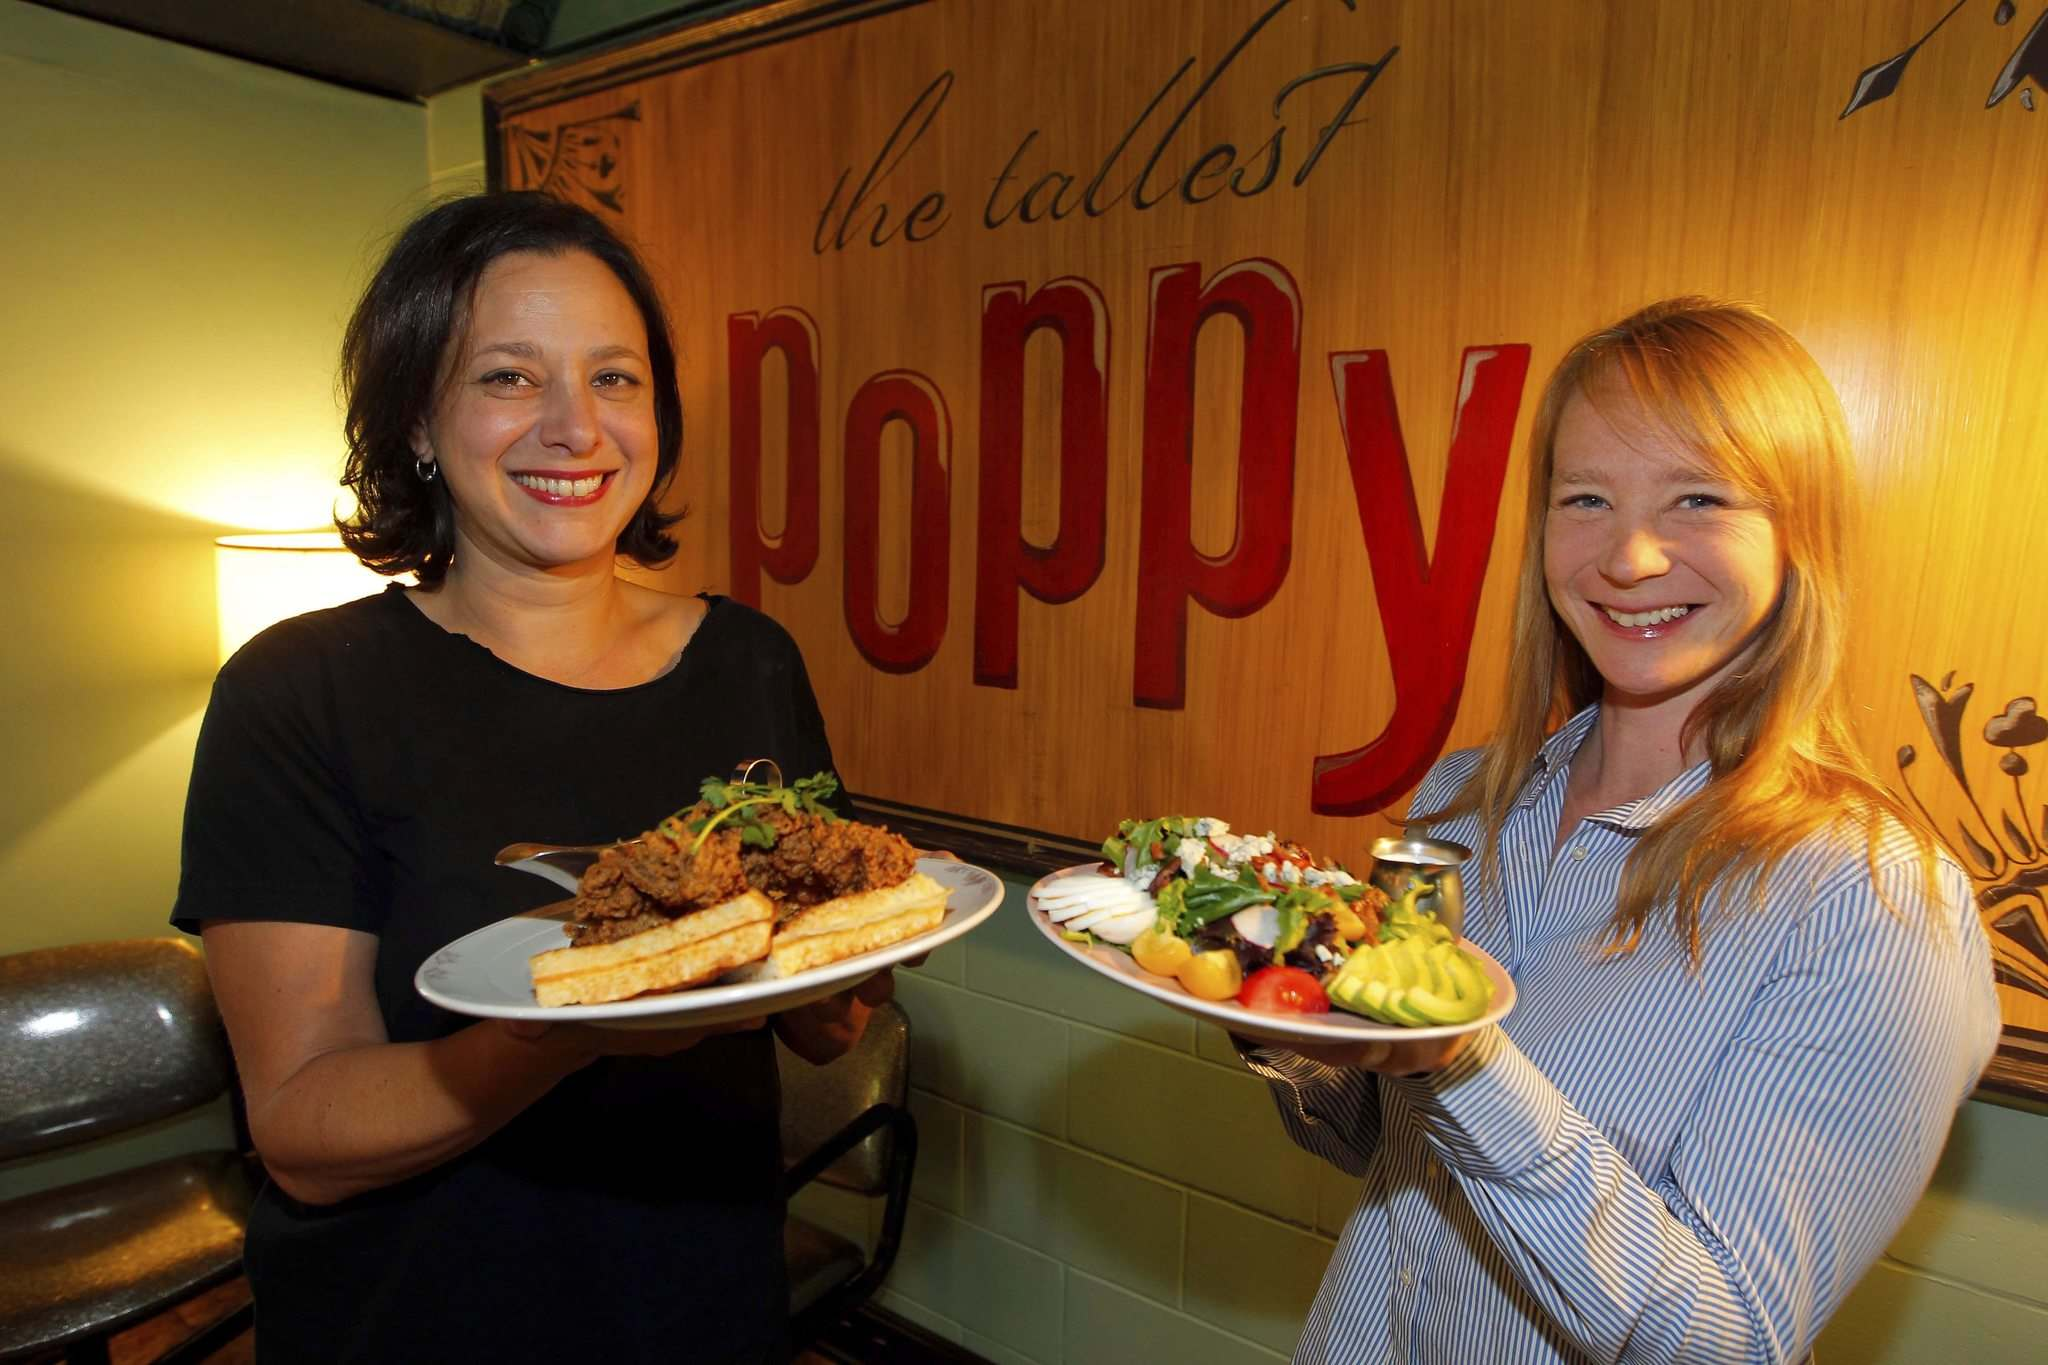 BORIS MINKEVICH / WINNIPEG FREE PRESS</p><p>The Tallest Poppy owner Talia Syrie with fried chicken and waffles; manager Eileen Fowler shows off the Cobb salad.</p></p>